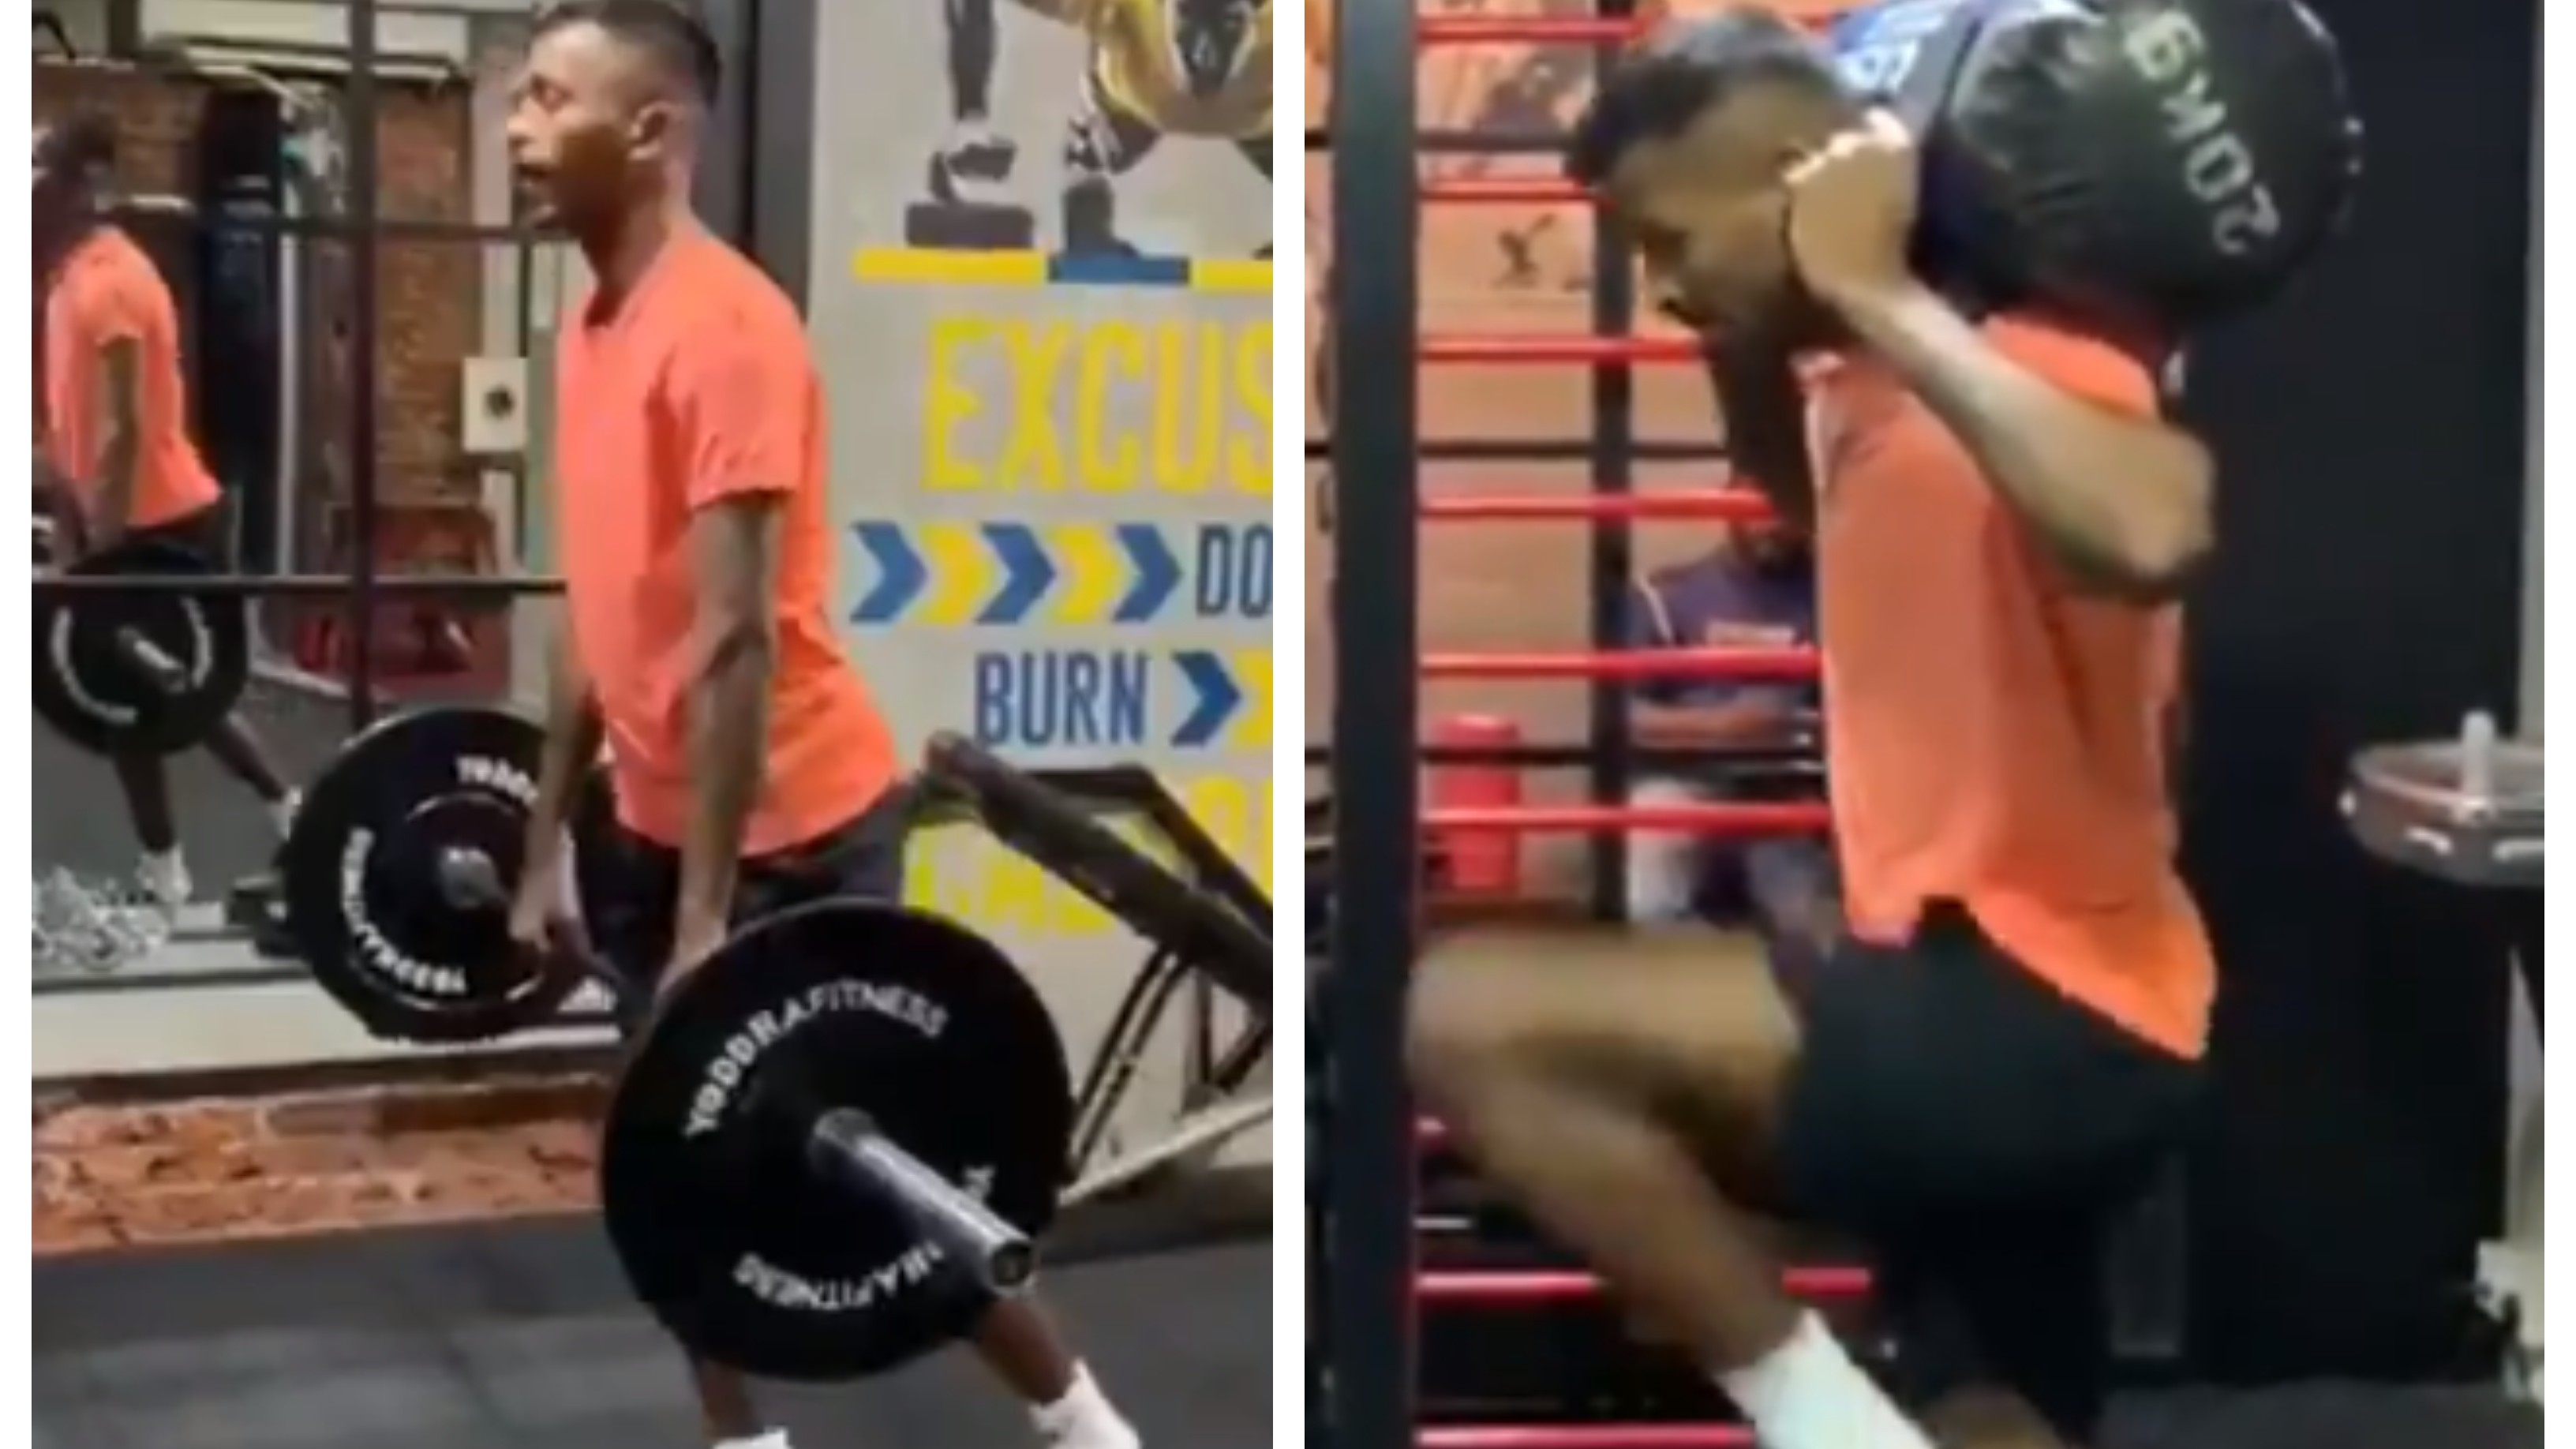 CWC 2019: WATCH – Hardik Pandya sweats it out in the gym ahead of his maiden World Cup appearance